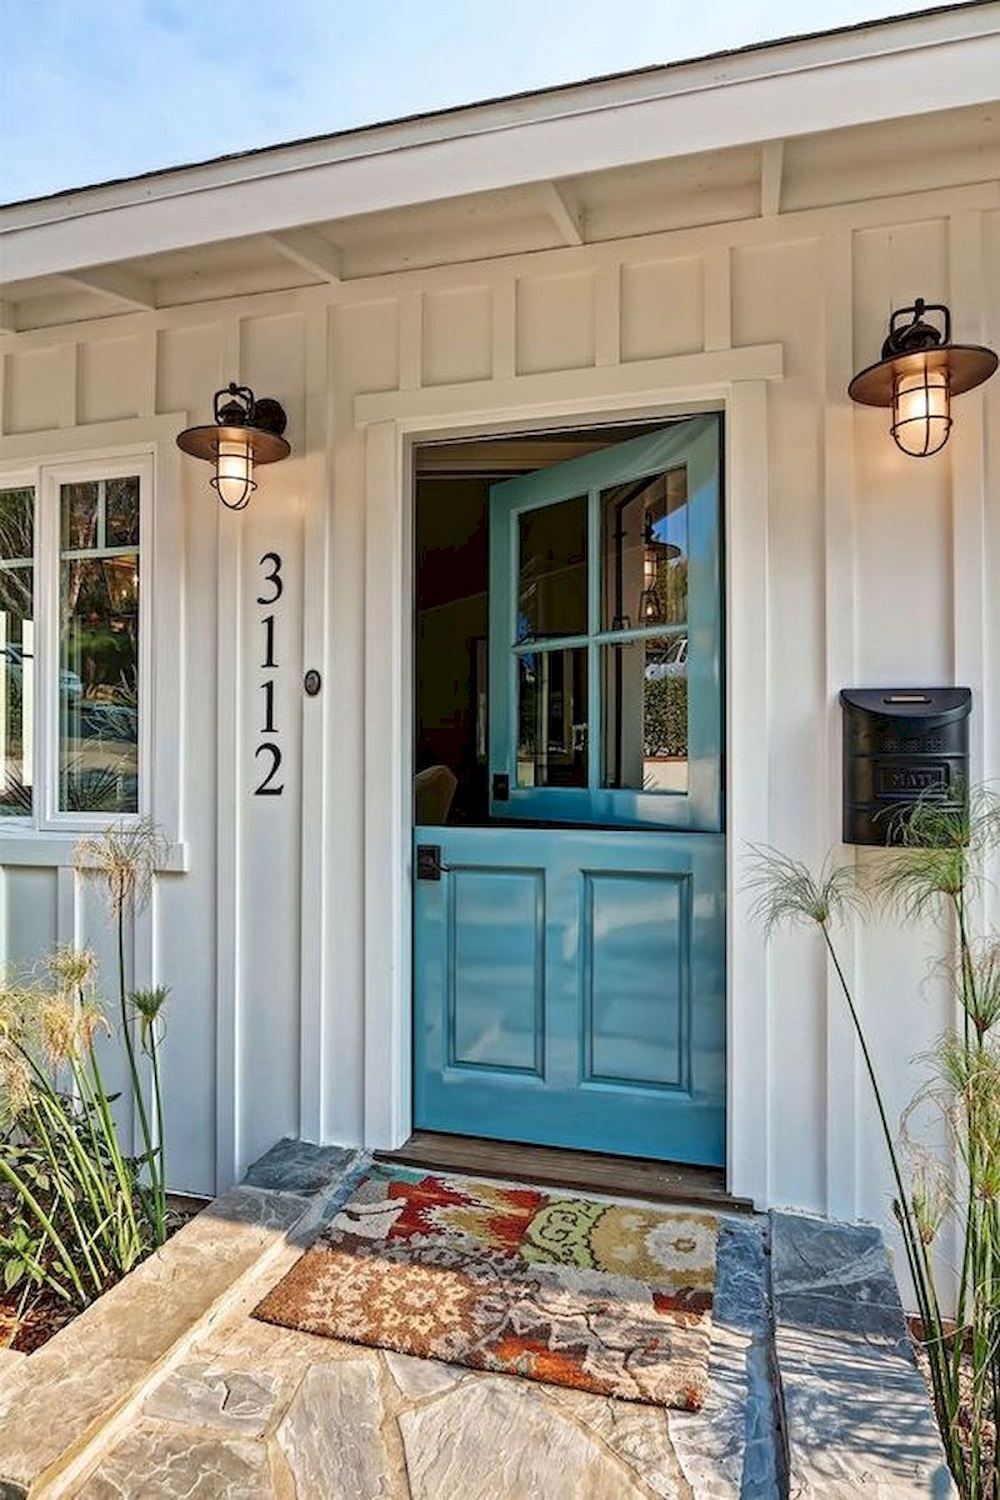 do4 The types of doors that you can use in your home design